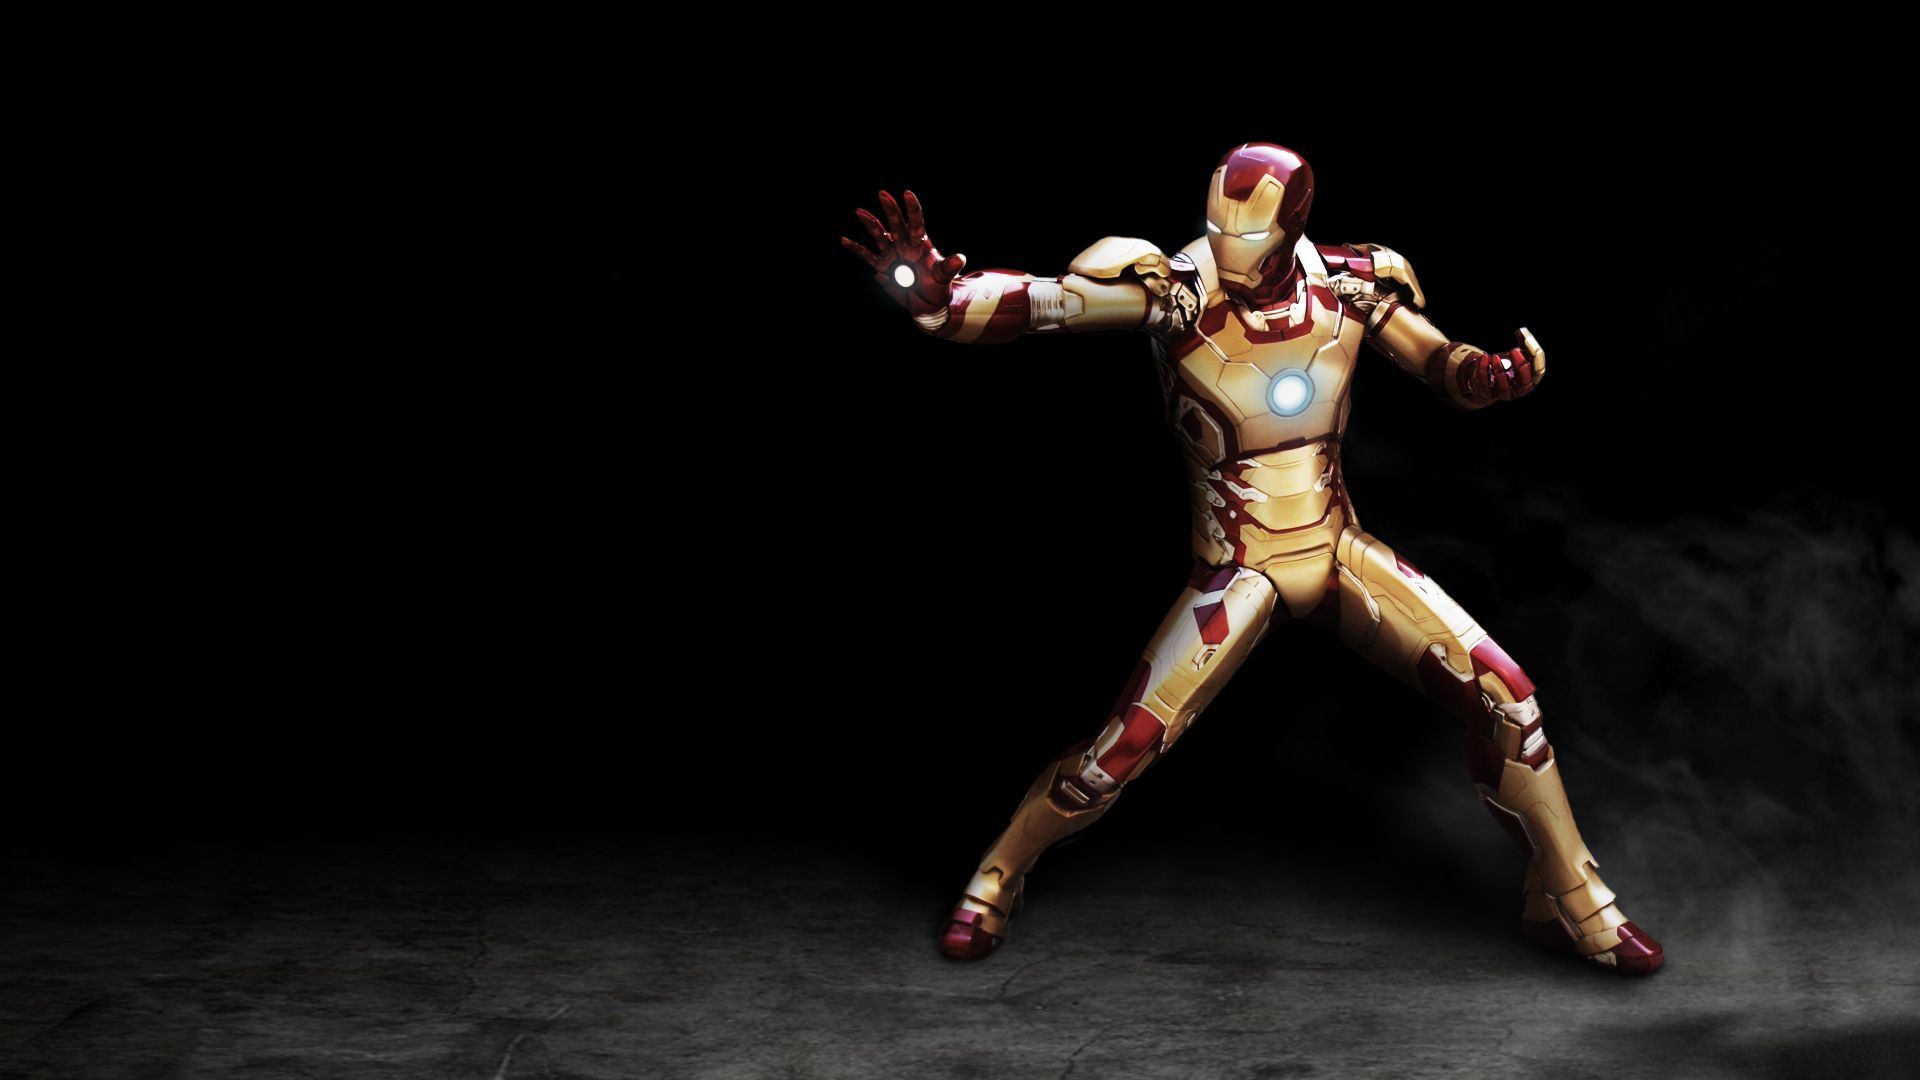 iron man hd wallpapers 1080p